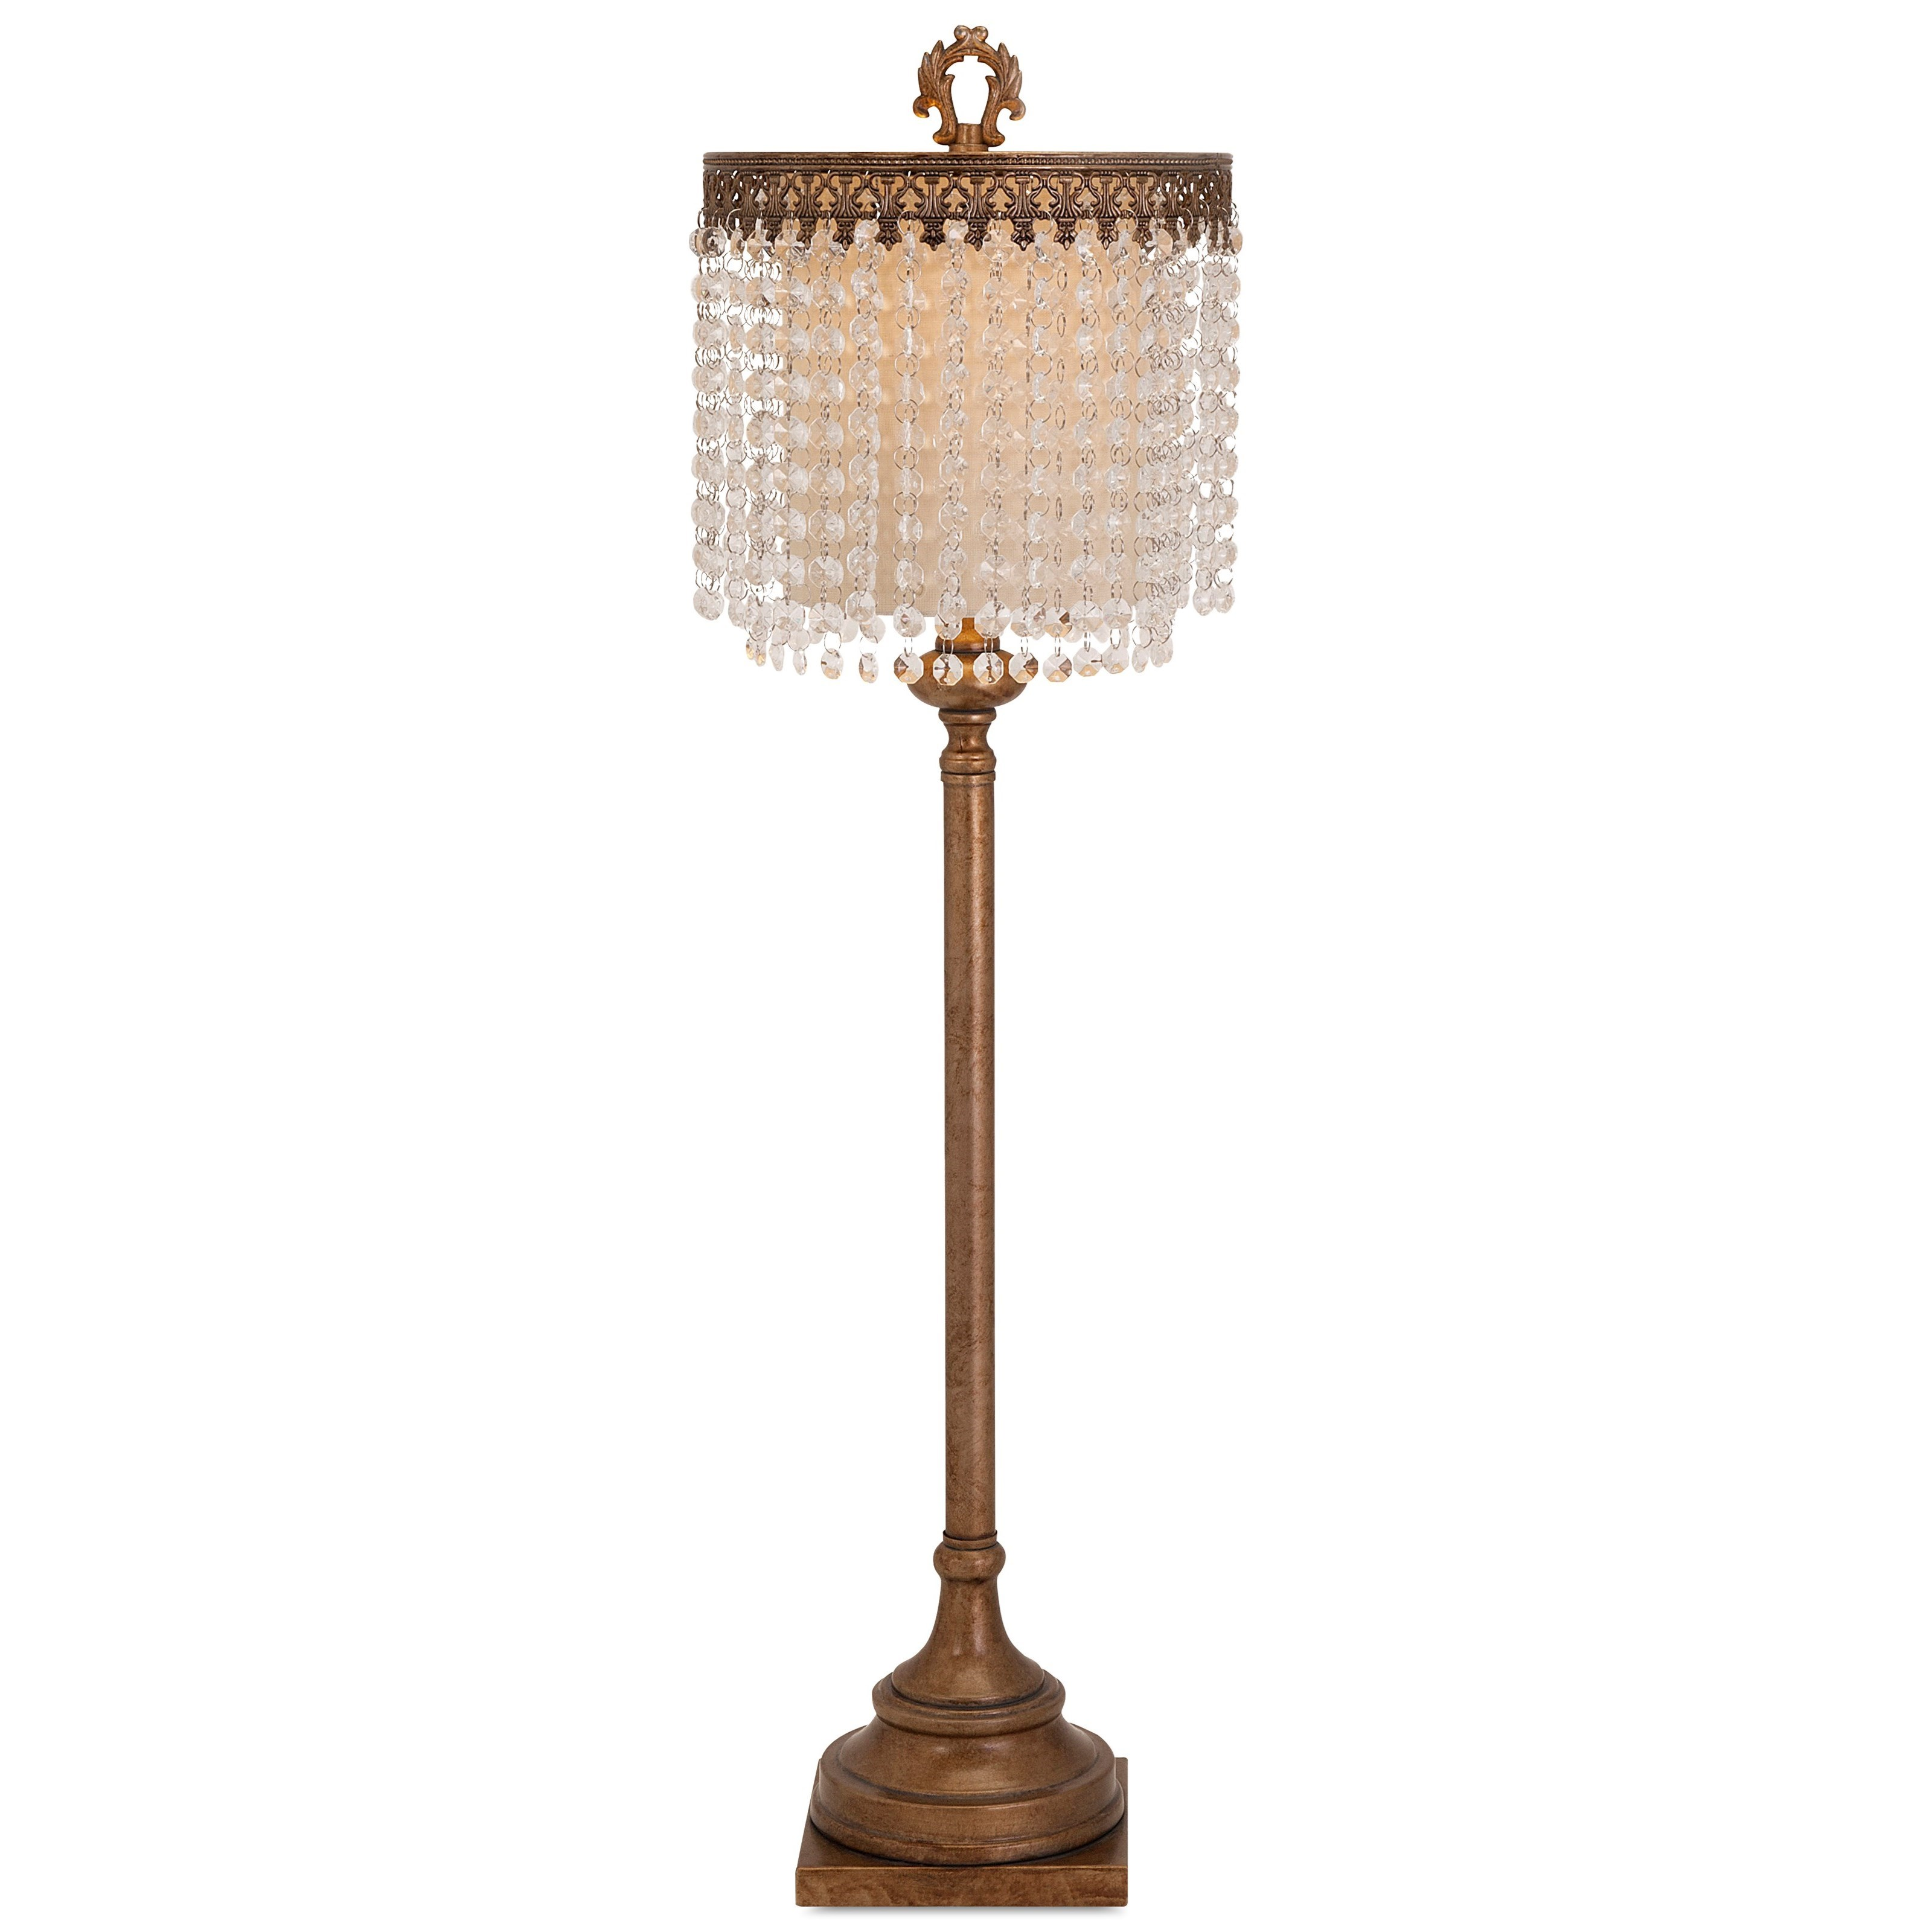 Becky Fletcher Maeveen Crystal Beaded Table Lamp by IMAX Worldwide Home at Alison Craig Home Furnishings